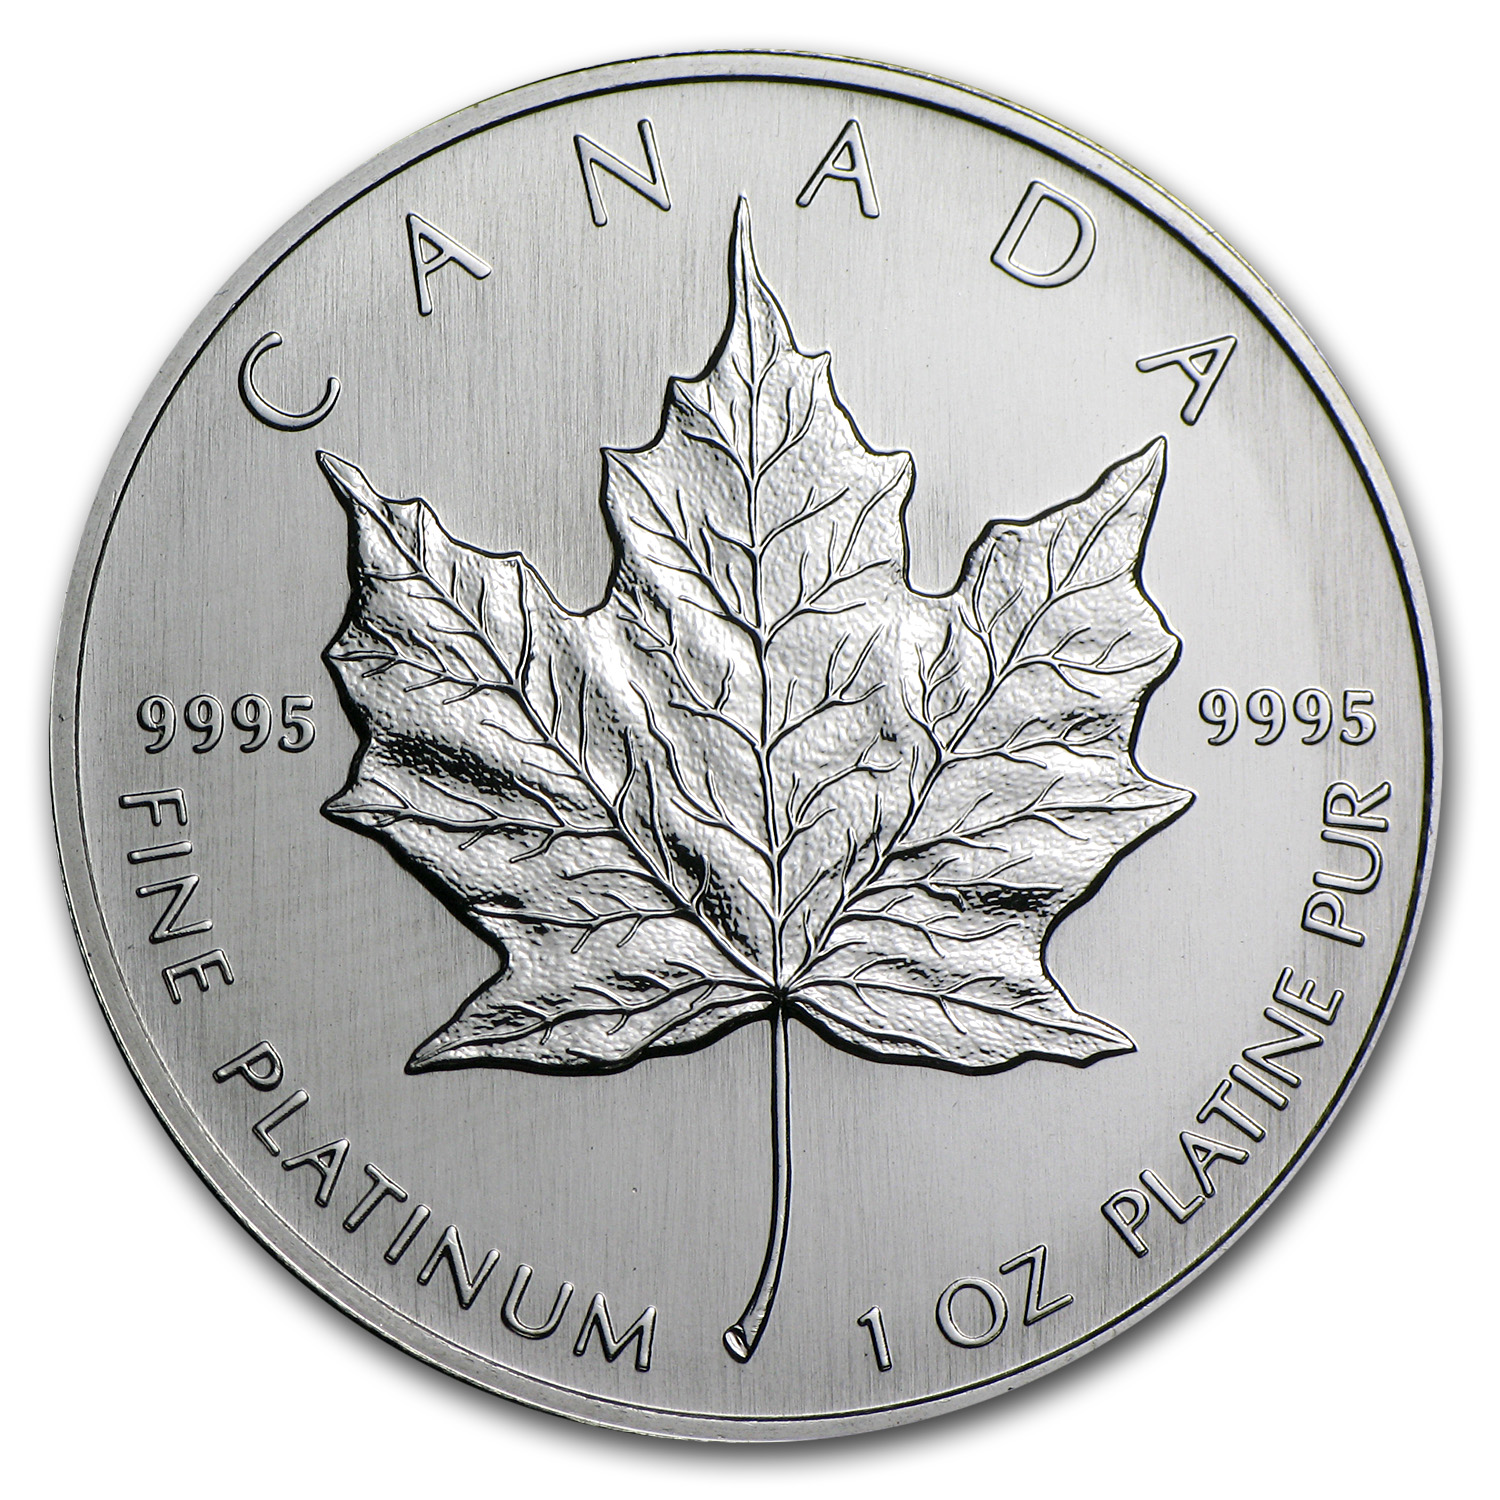 1994 Canada 1 oz Platinum Maple Leaf BU